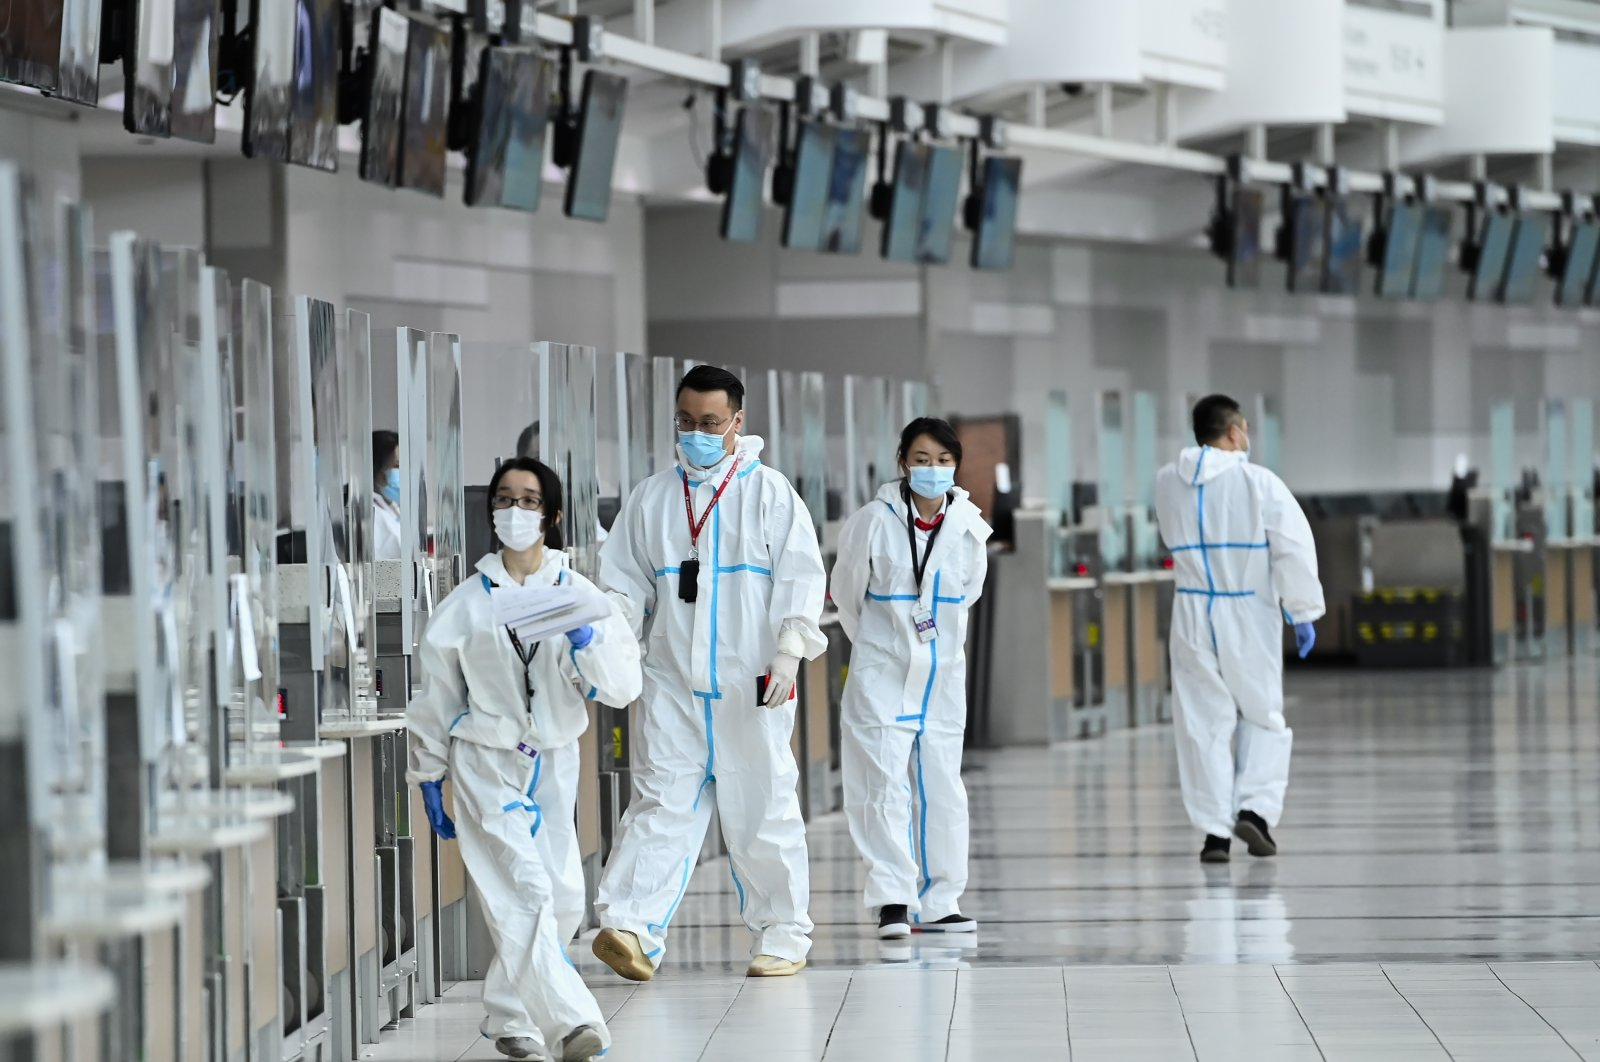 Workers walk by a check-in counter at Pearson International Airport during the COVID-19 pandemic, Toronto, Canada, Oct. 14, 2020. (AP Photo)